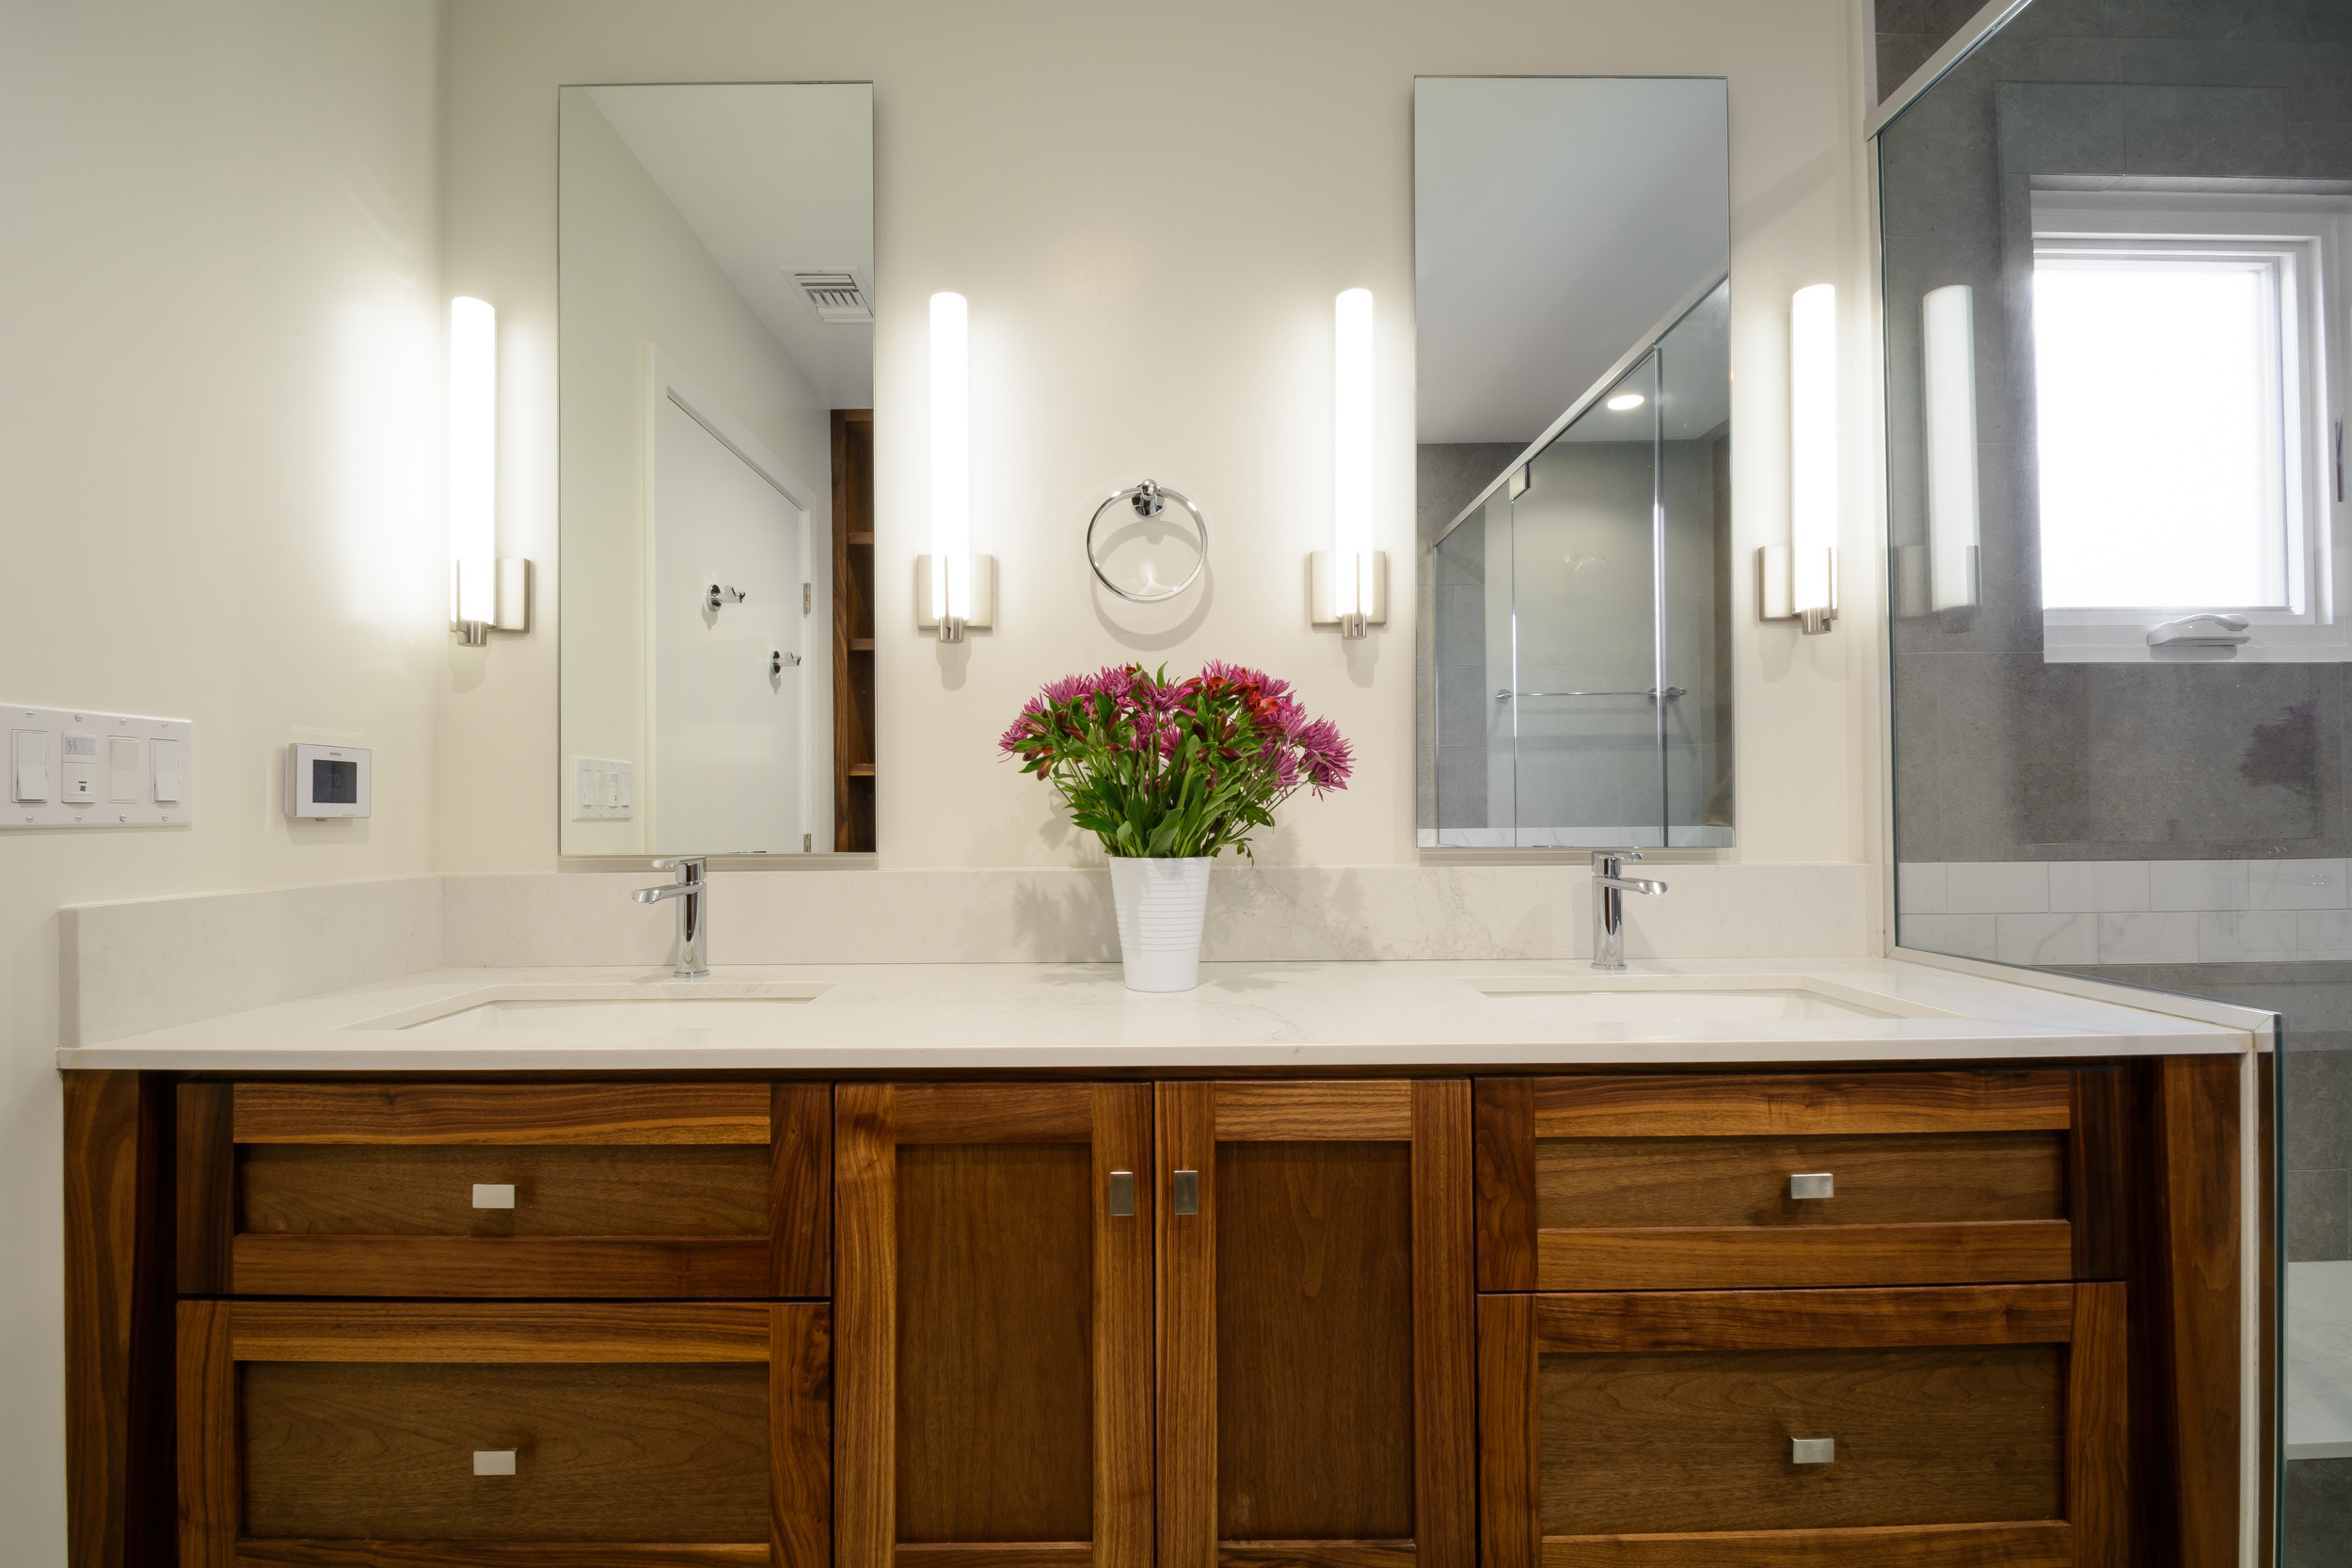 Custom walnut vanity with a white stone countertop and tall mirrored medicine cabinets